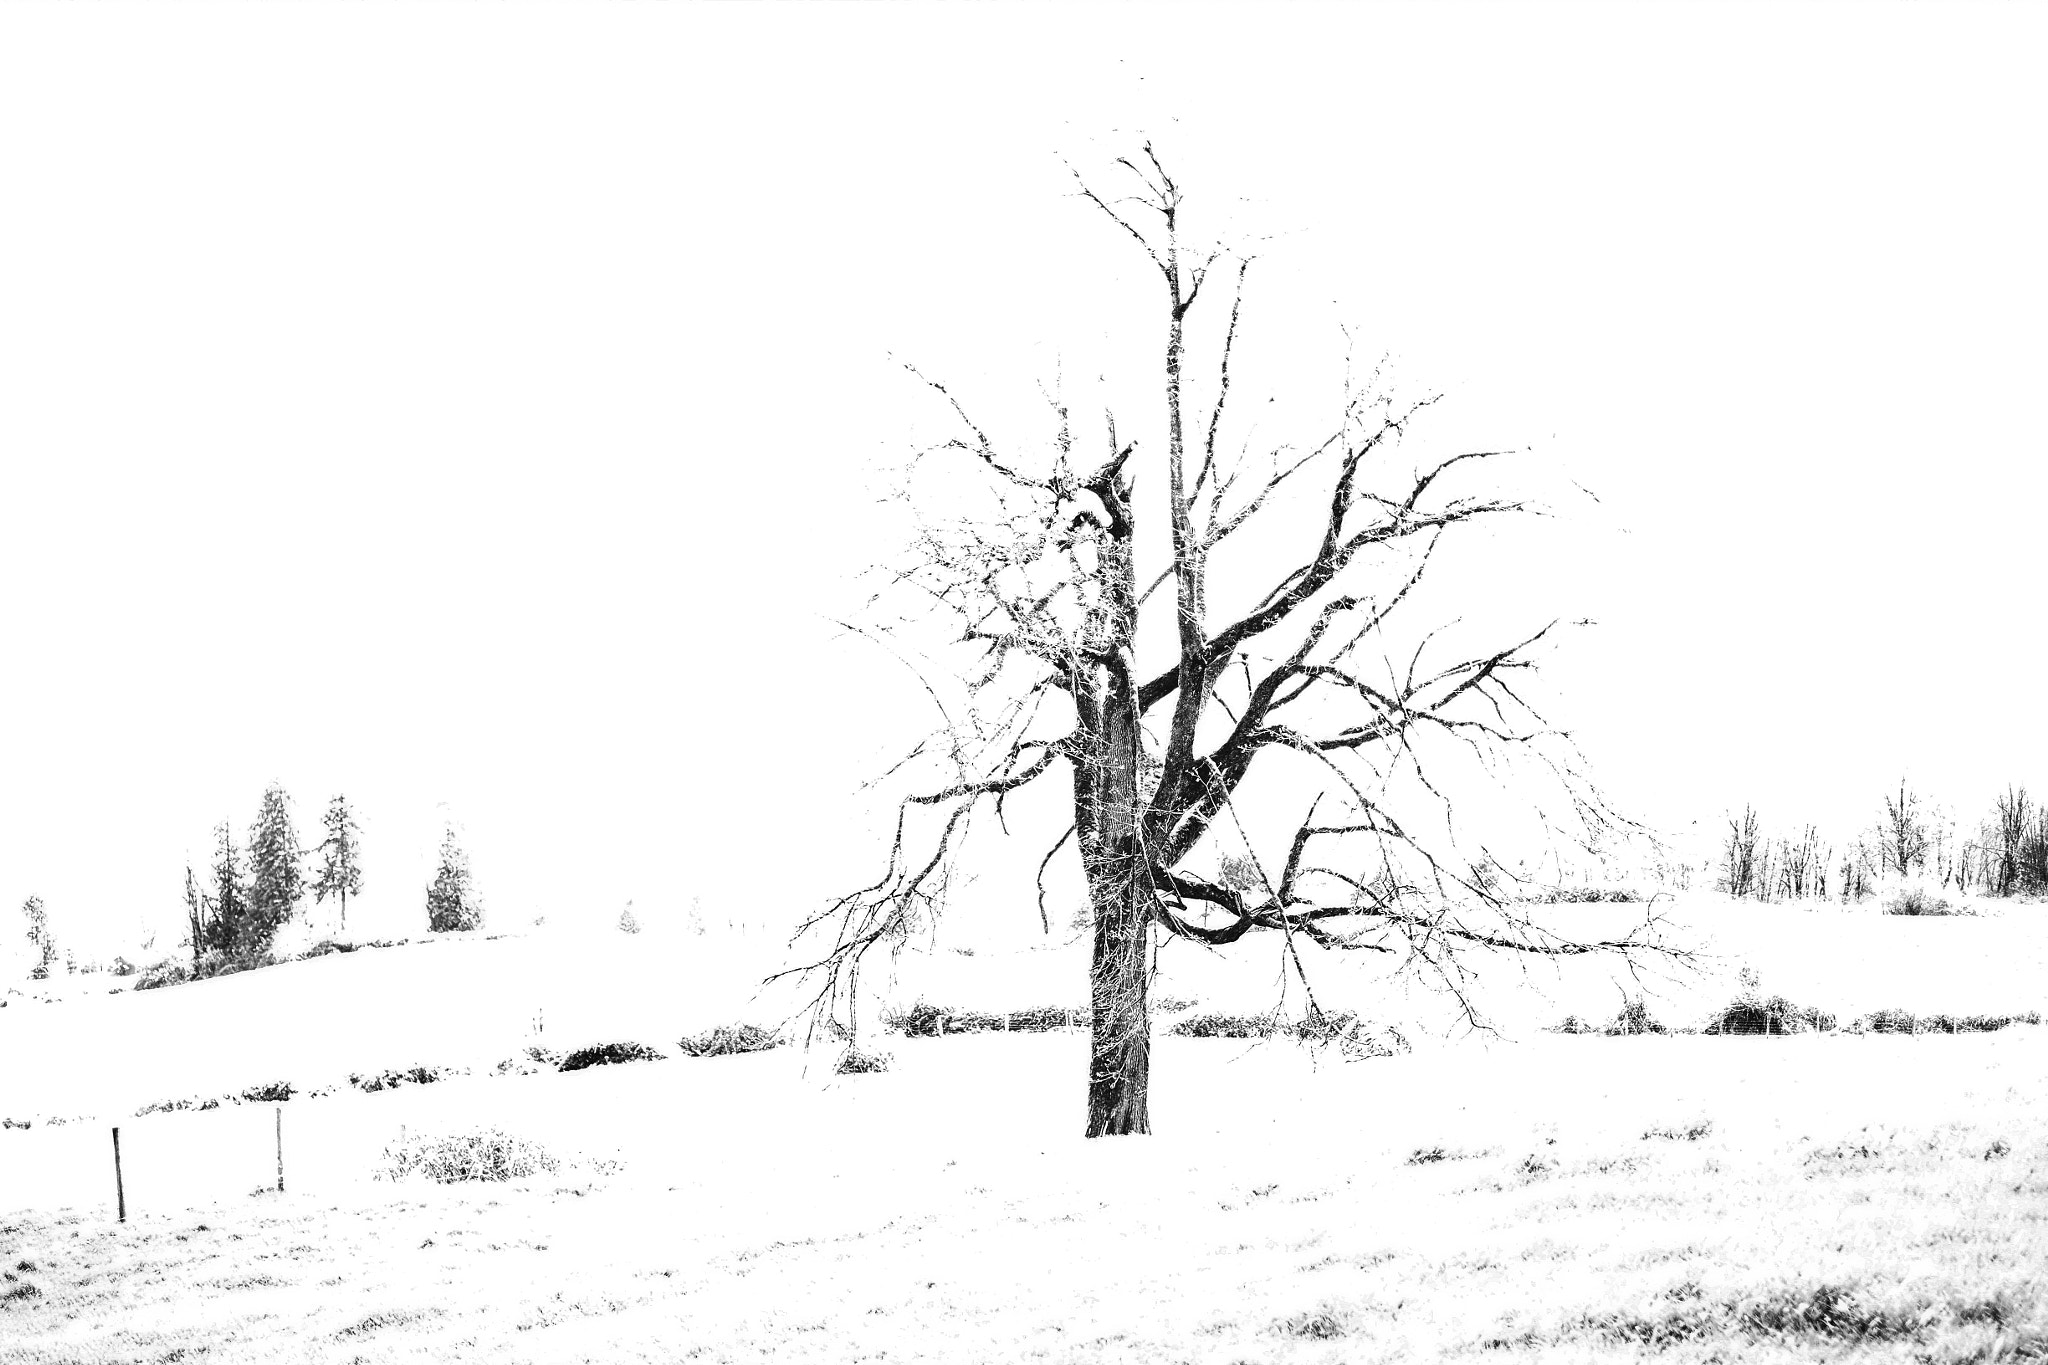 Photograph A Cold Tree in Winter by 1dirtboy on 500px